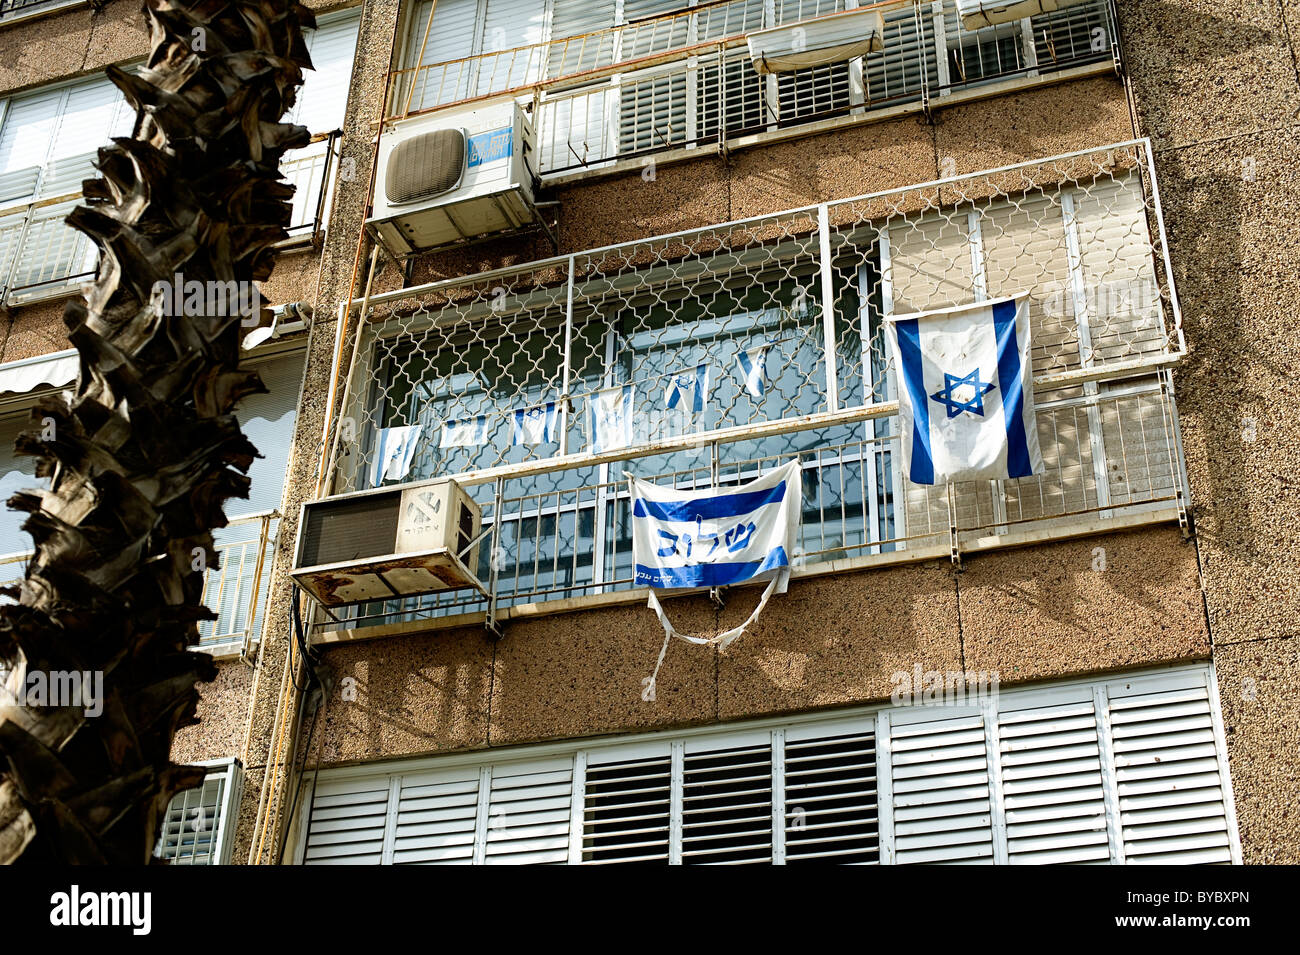 israeli flag and sign saying shalom (peace) in hebrew hanging from the window of a block of flats in tel aviv, israel - Stock Image